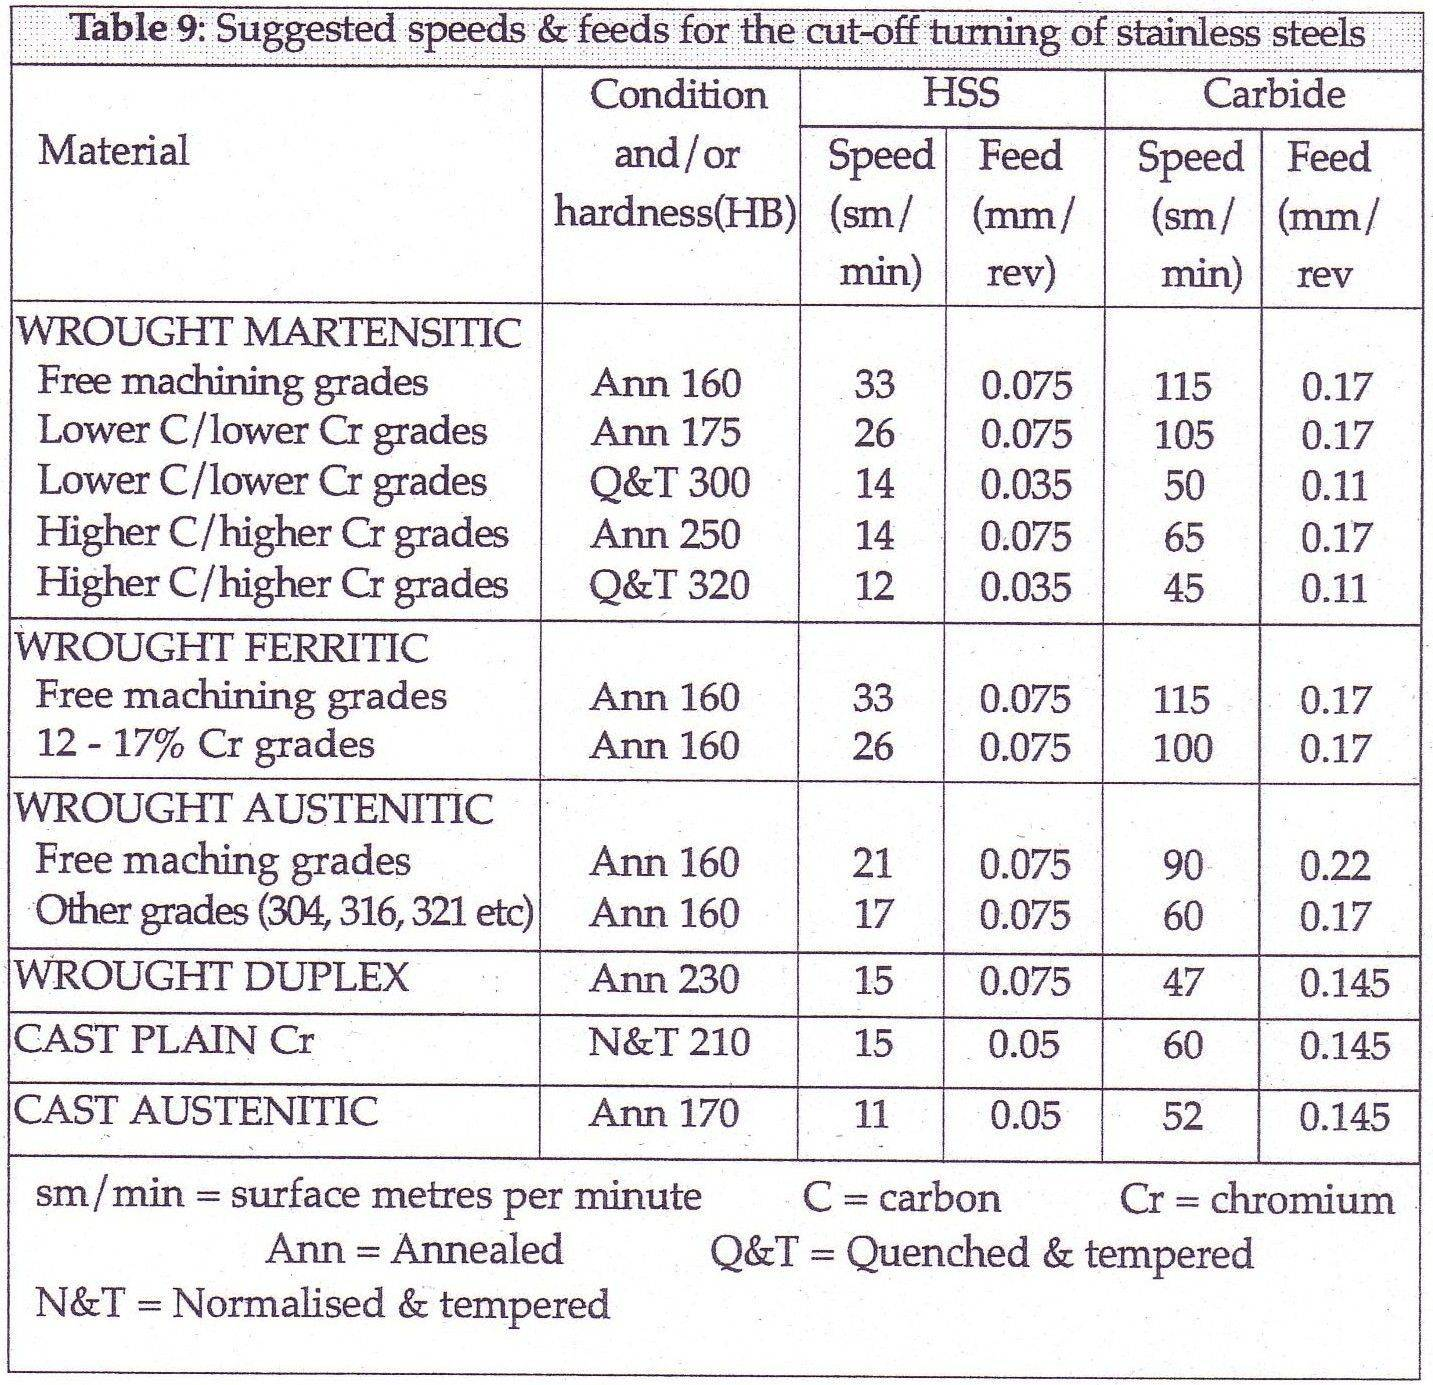 Speeds and feeds for turning stainless steels_7.jpg